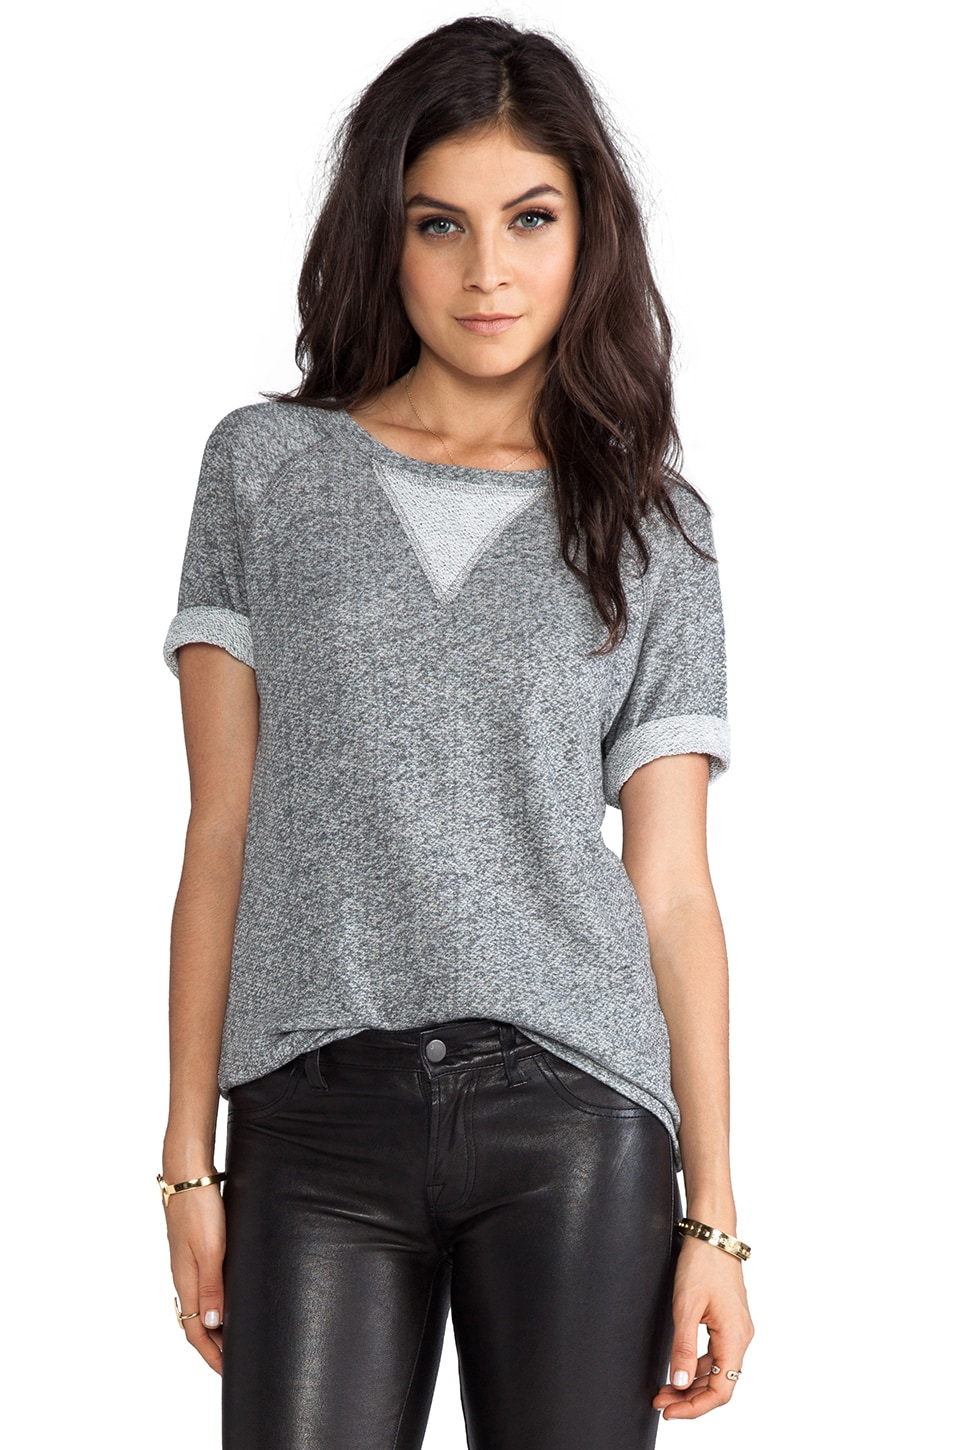 Whetherly French Terry Gia Tee in Charcoal